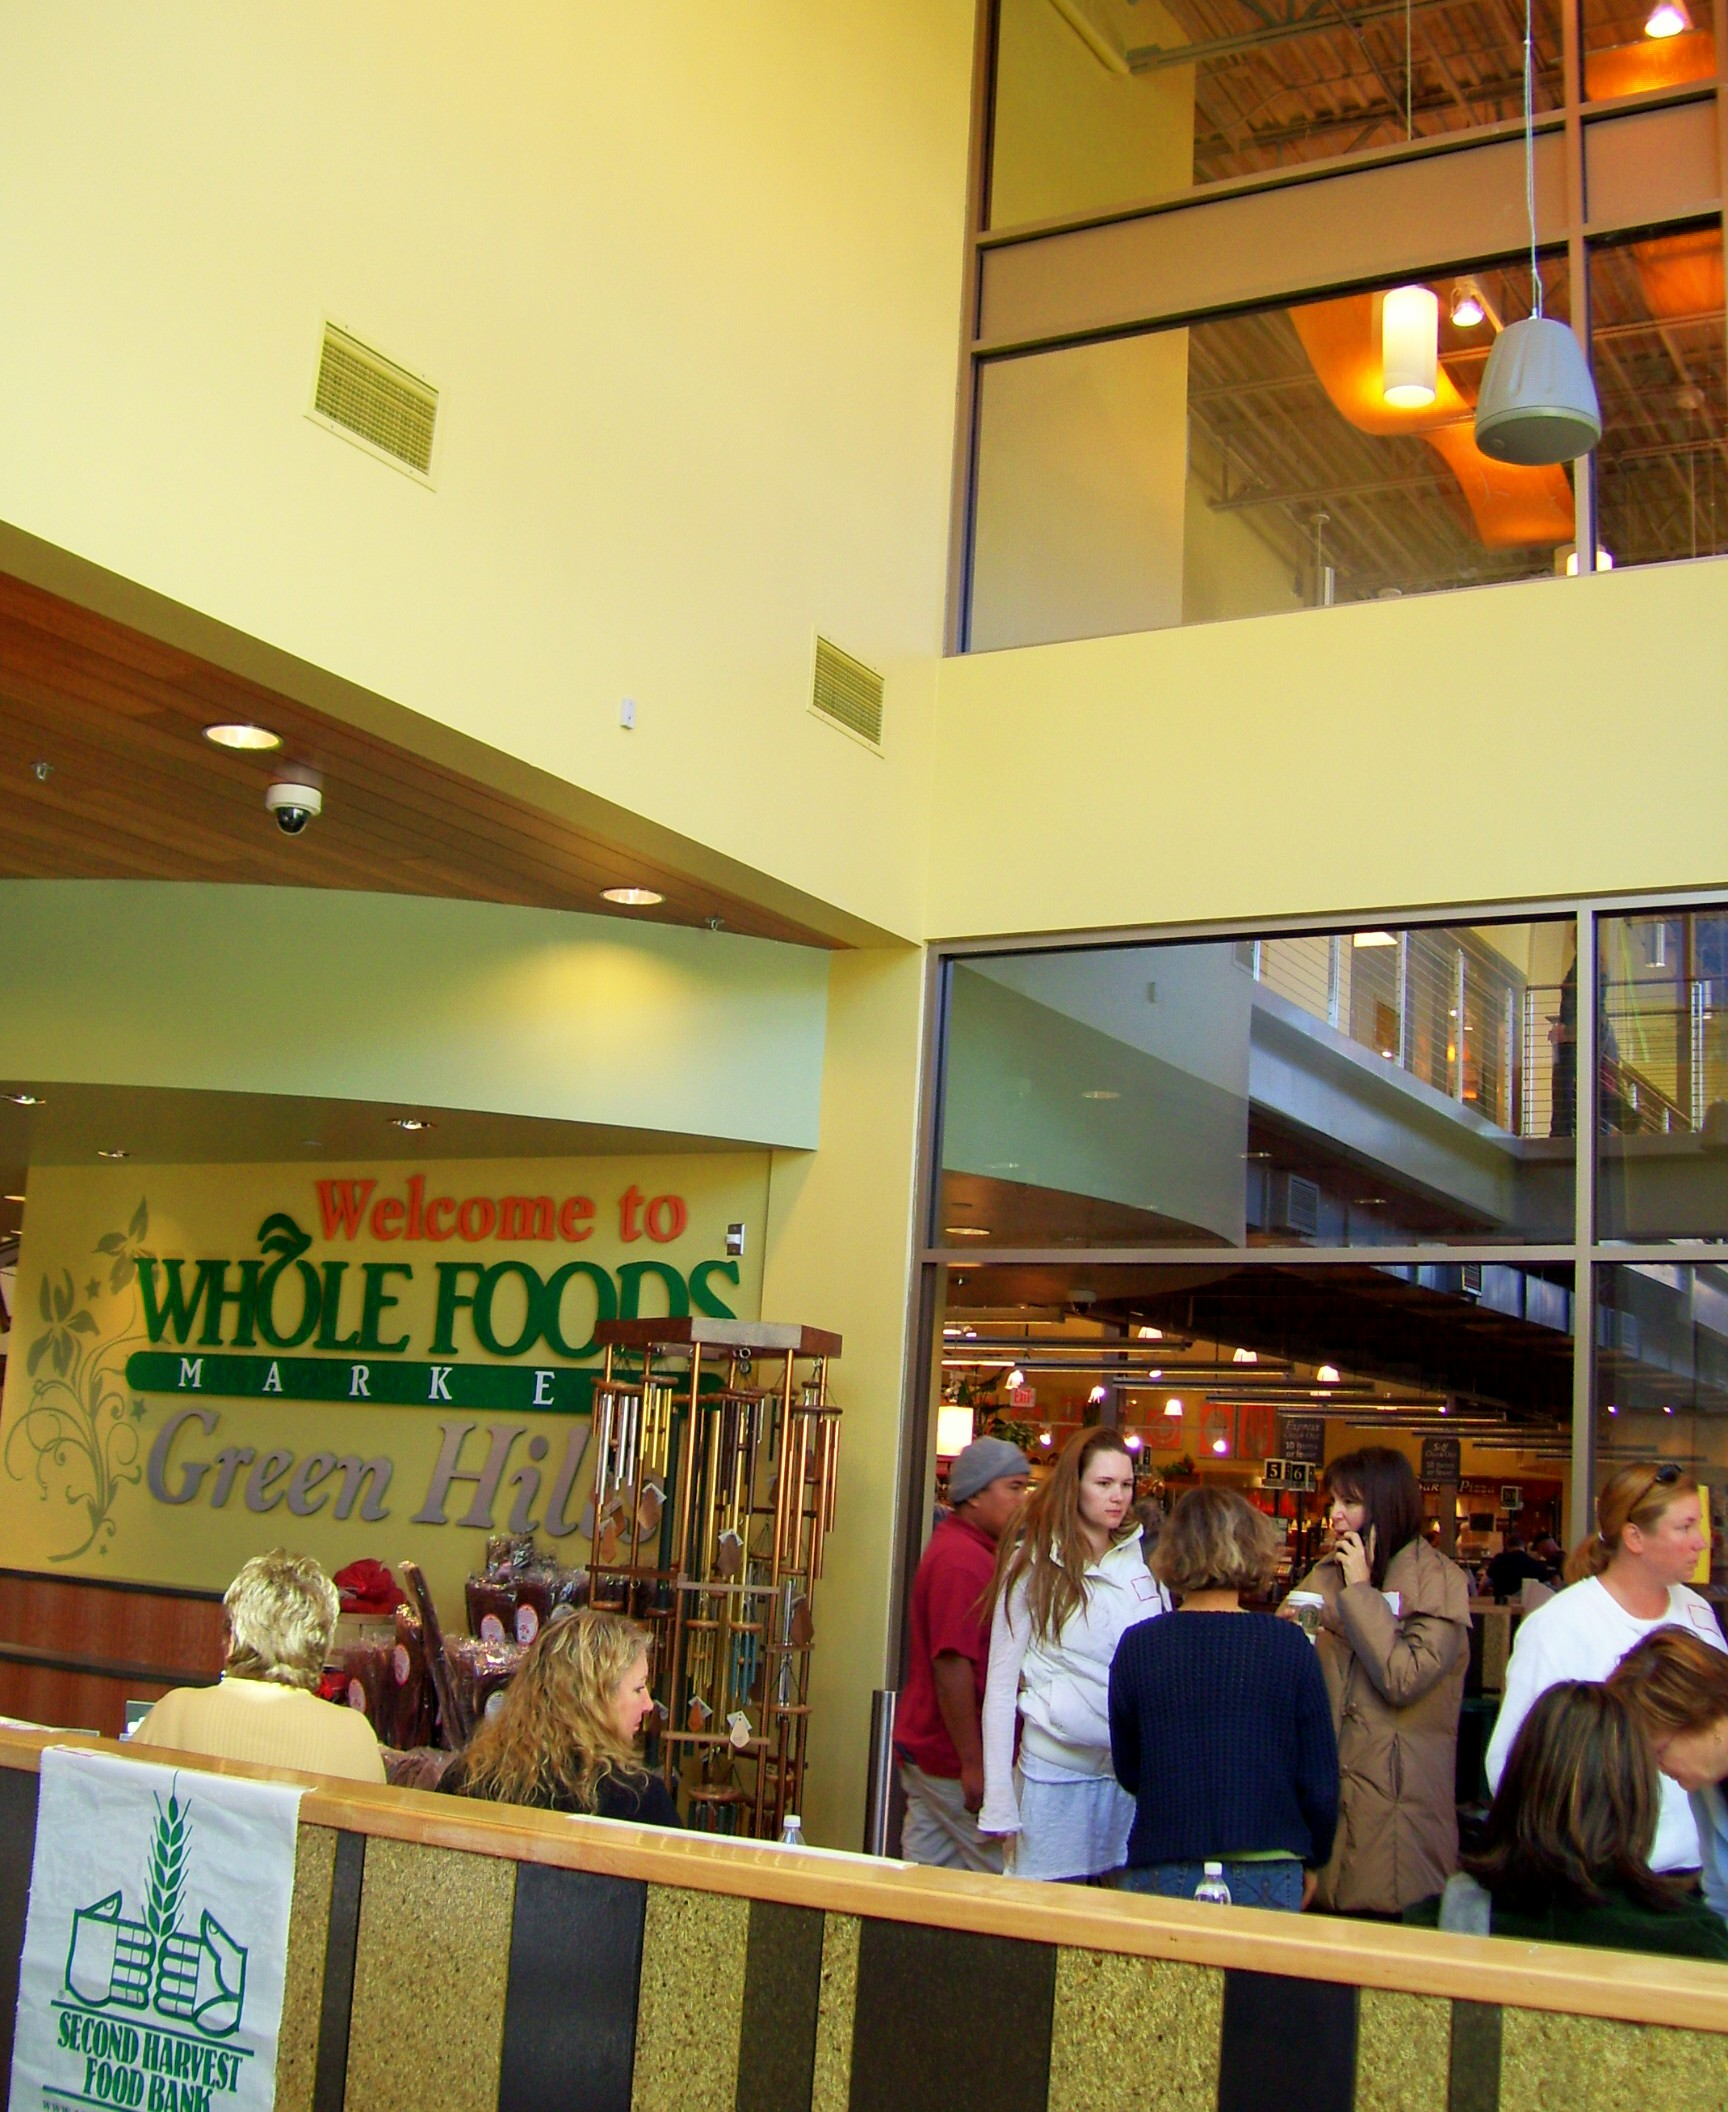 Whole Foods Nashville Green Hills Jpg